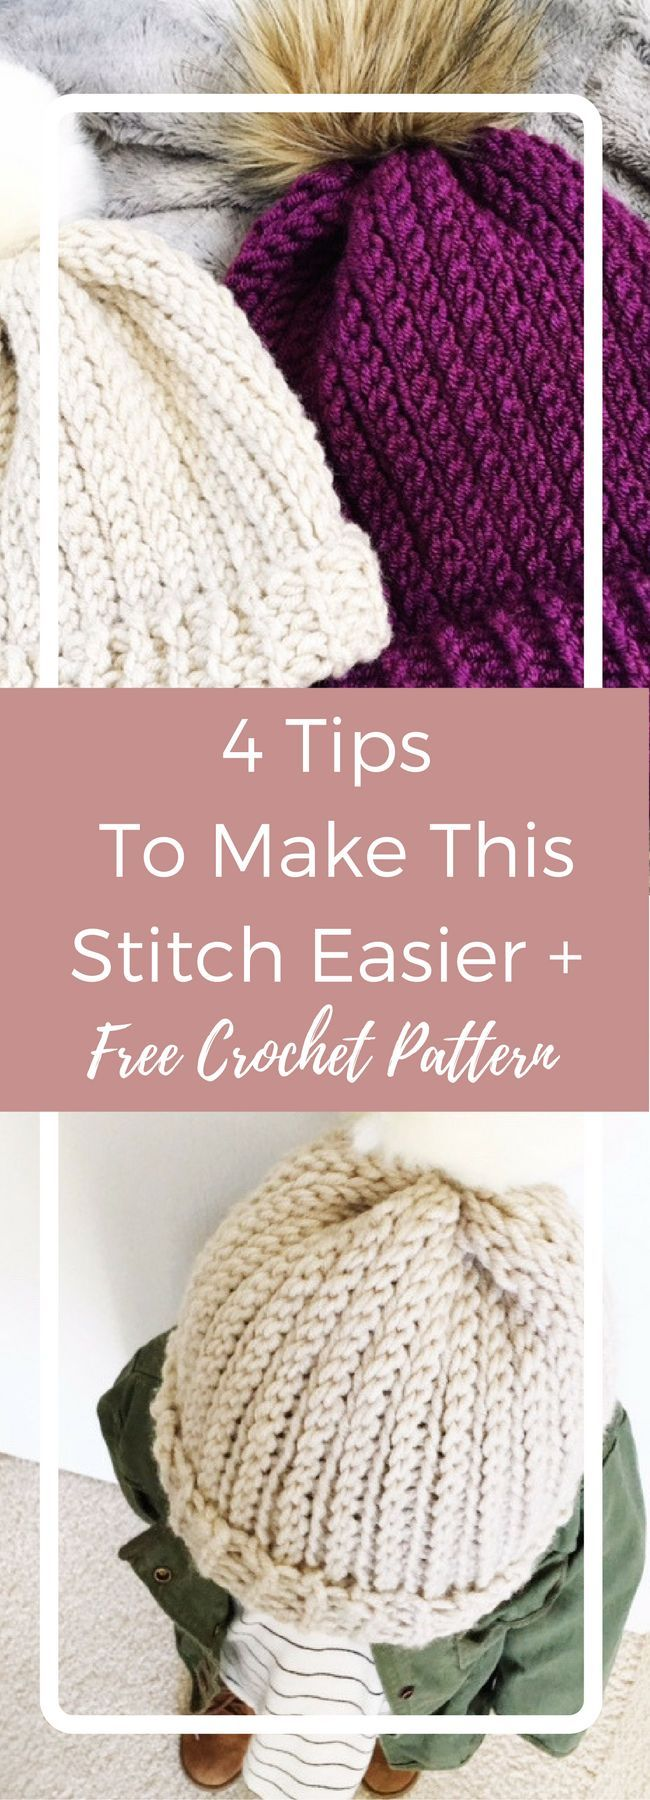 ribbed beanie crochet pattern / An easy beginner crochet pattern that uses 1 basic stitch that will fool your knitting friends.